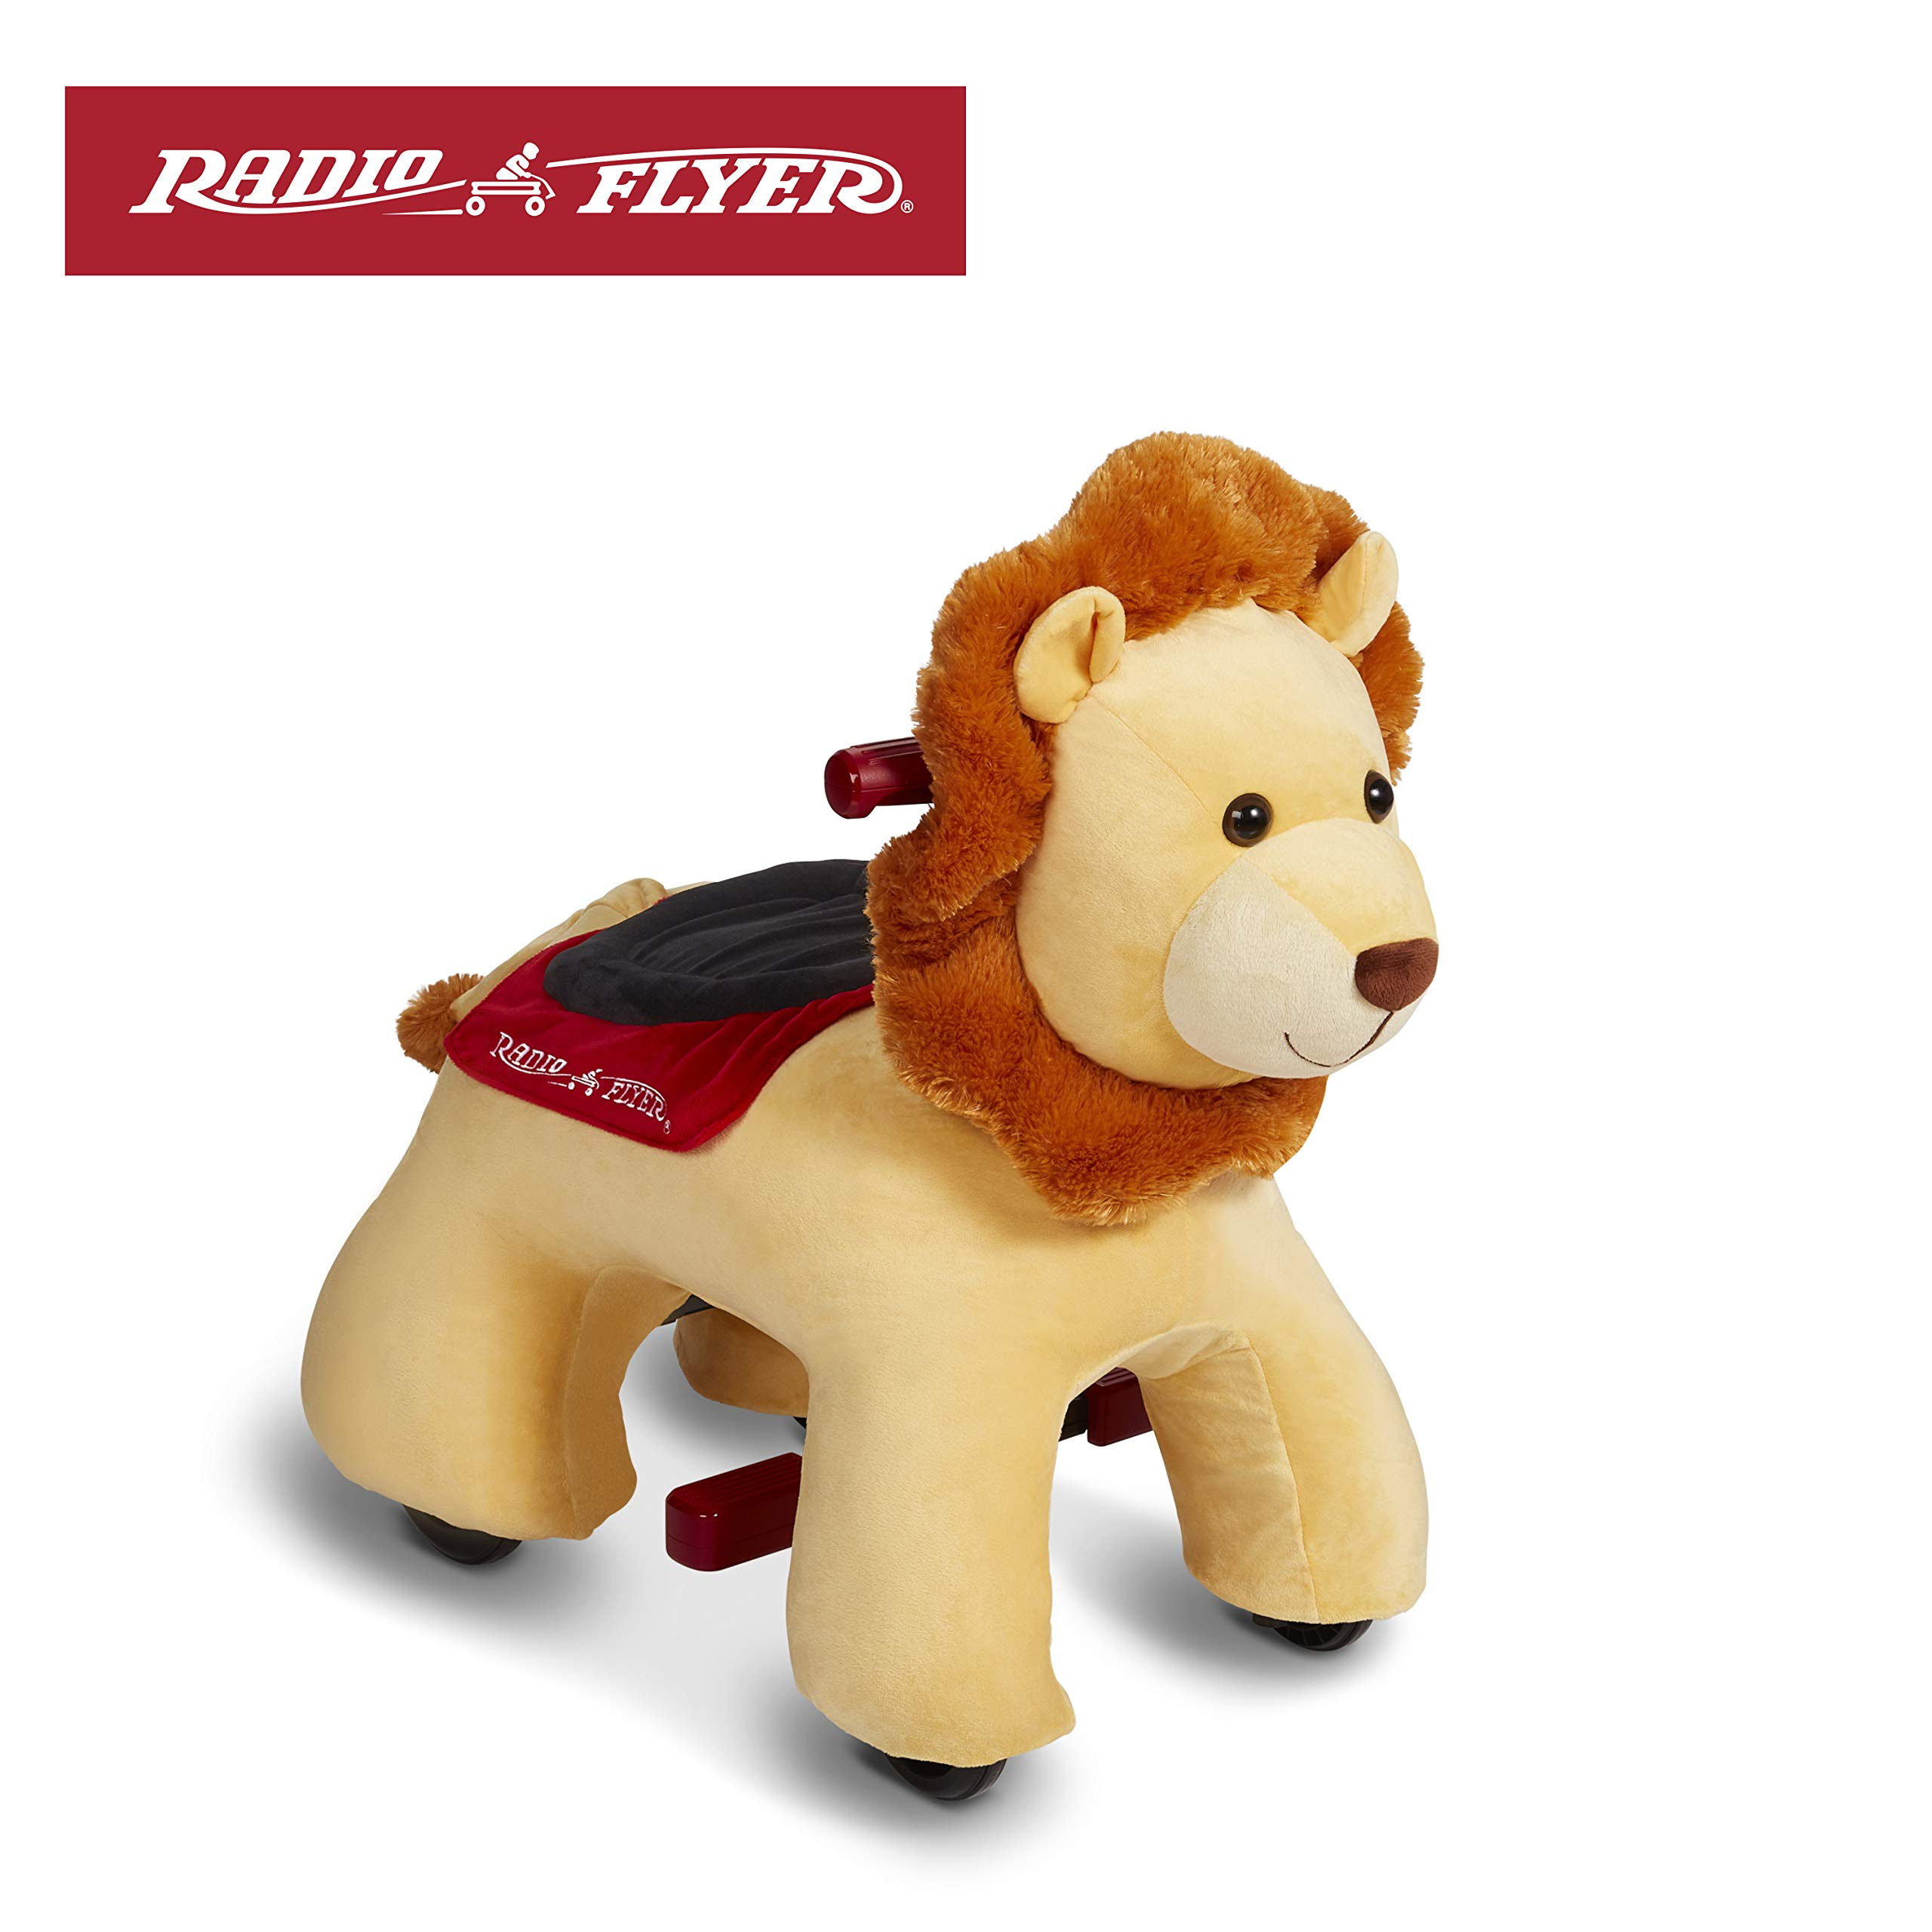 Radio Flyer Rory Electric Ride-On Lion with Sounds, Yellow (Amazon Exclusive) by Radio Flyer